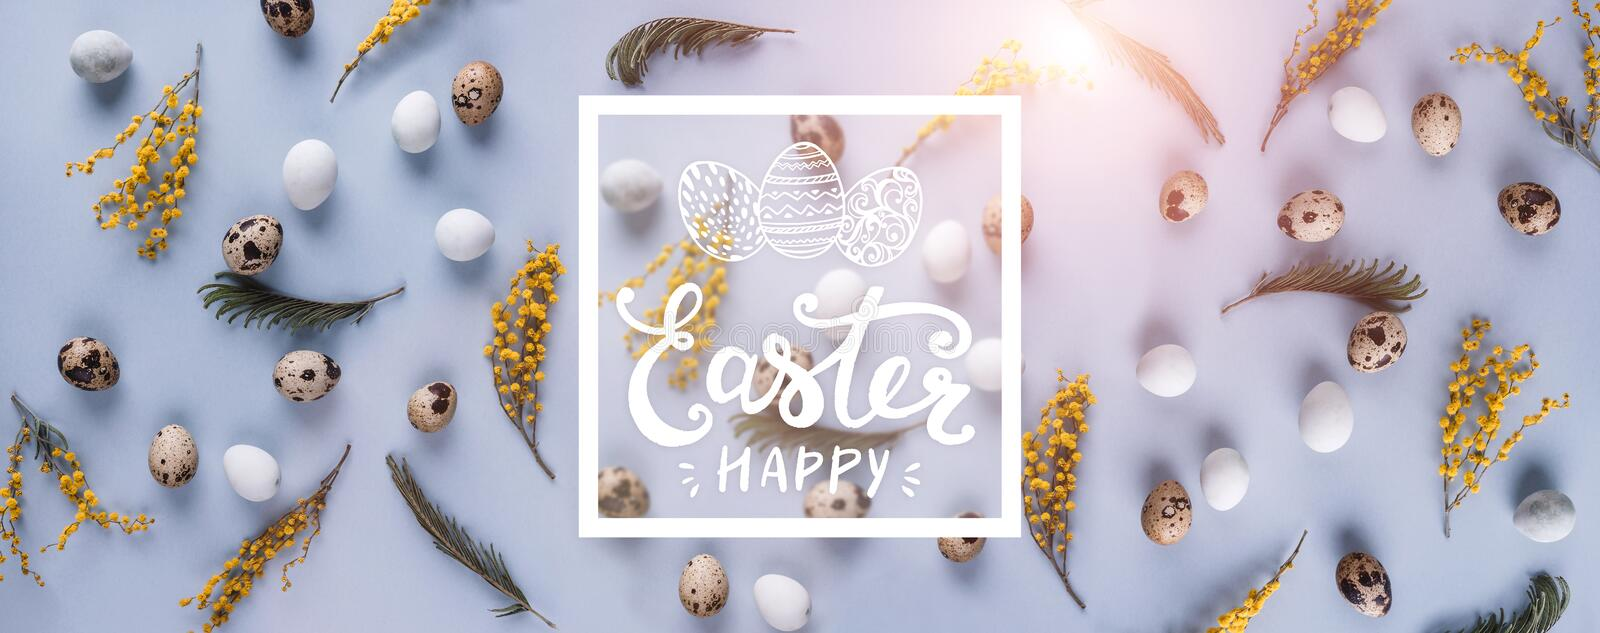 Easter eggs pattern background with spring flowers. Top view with copy space. Happy Easter card royalty free illustration